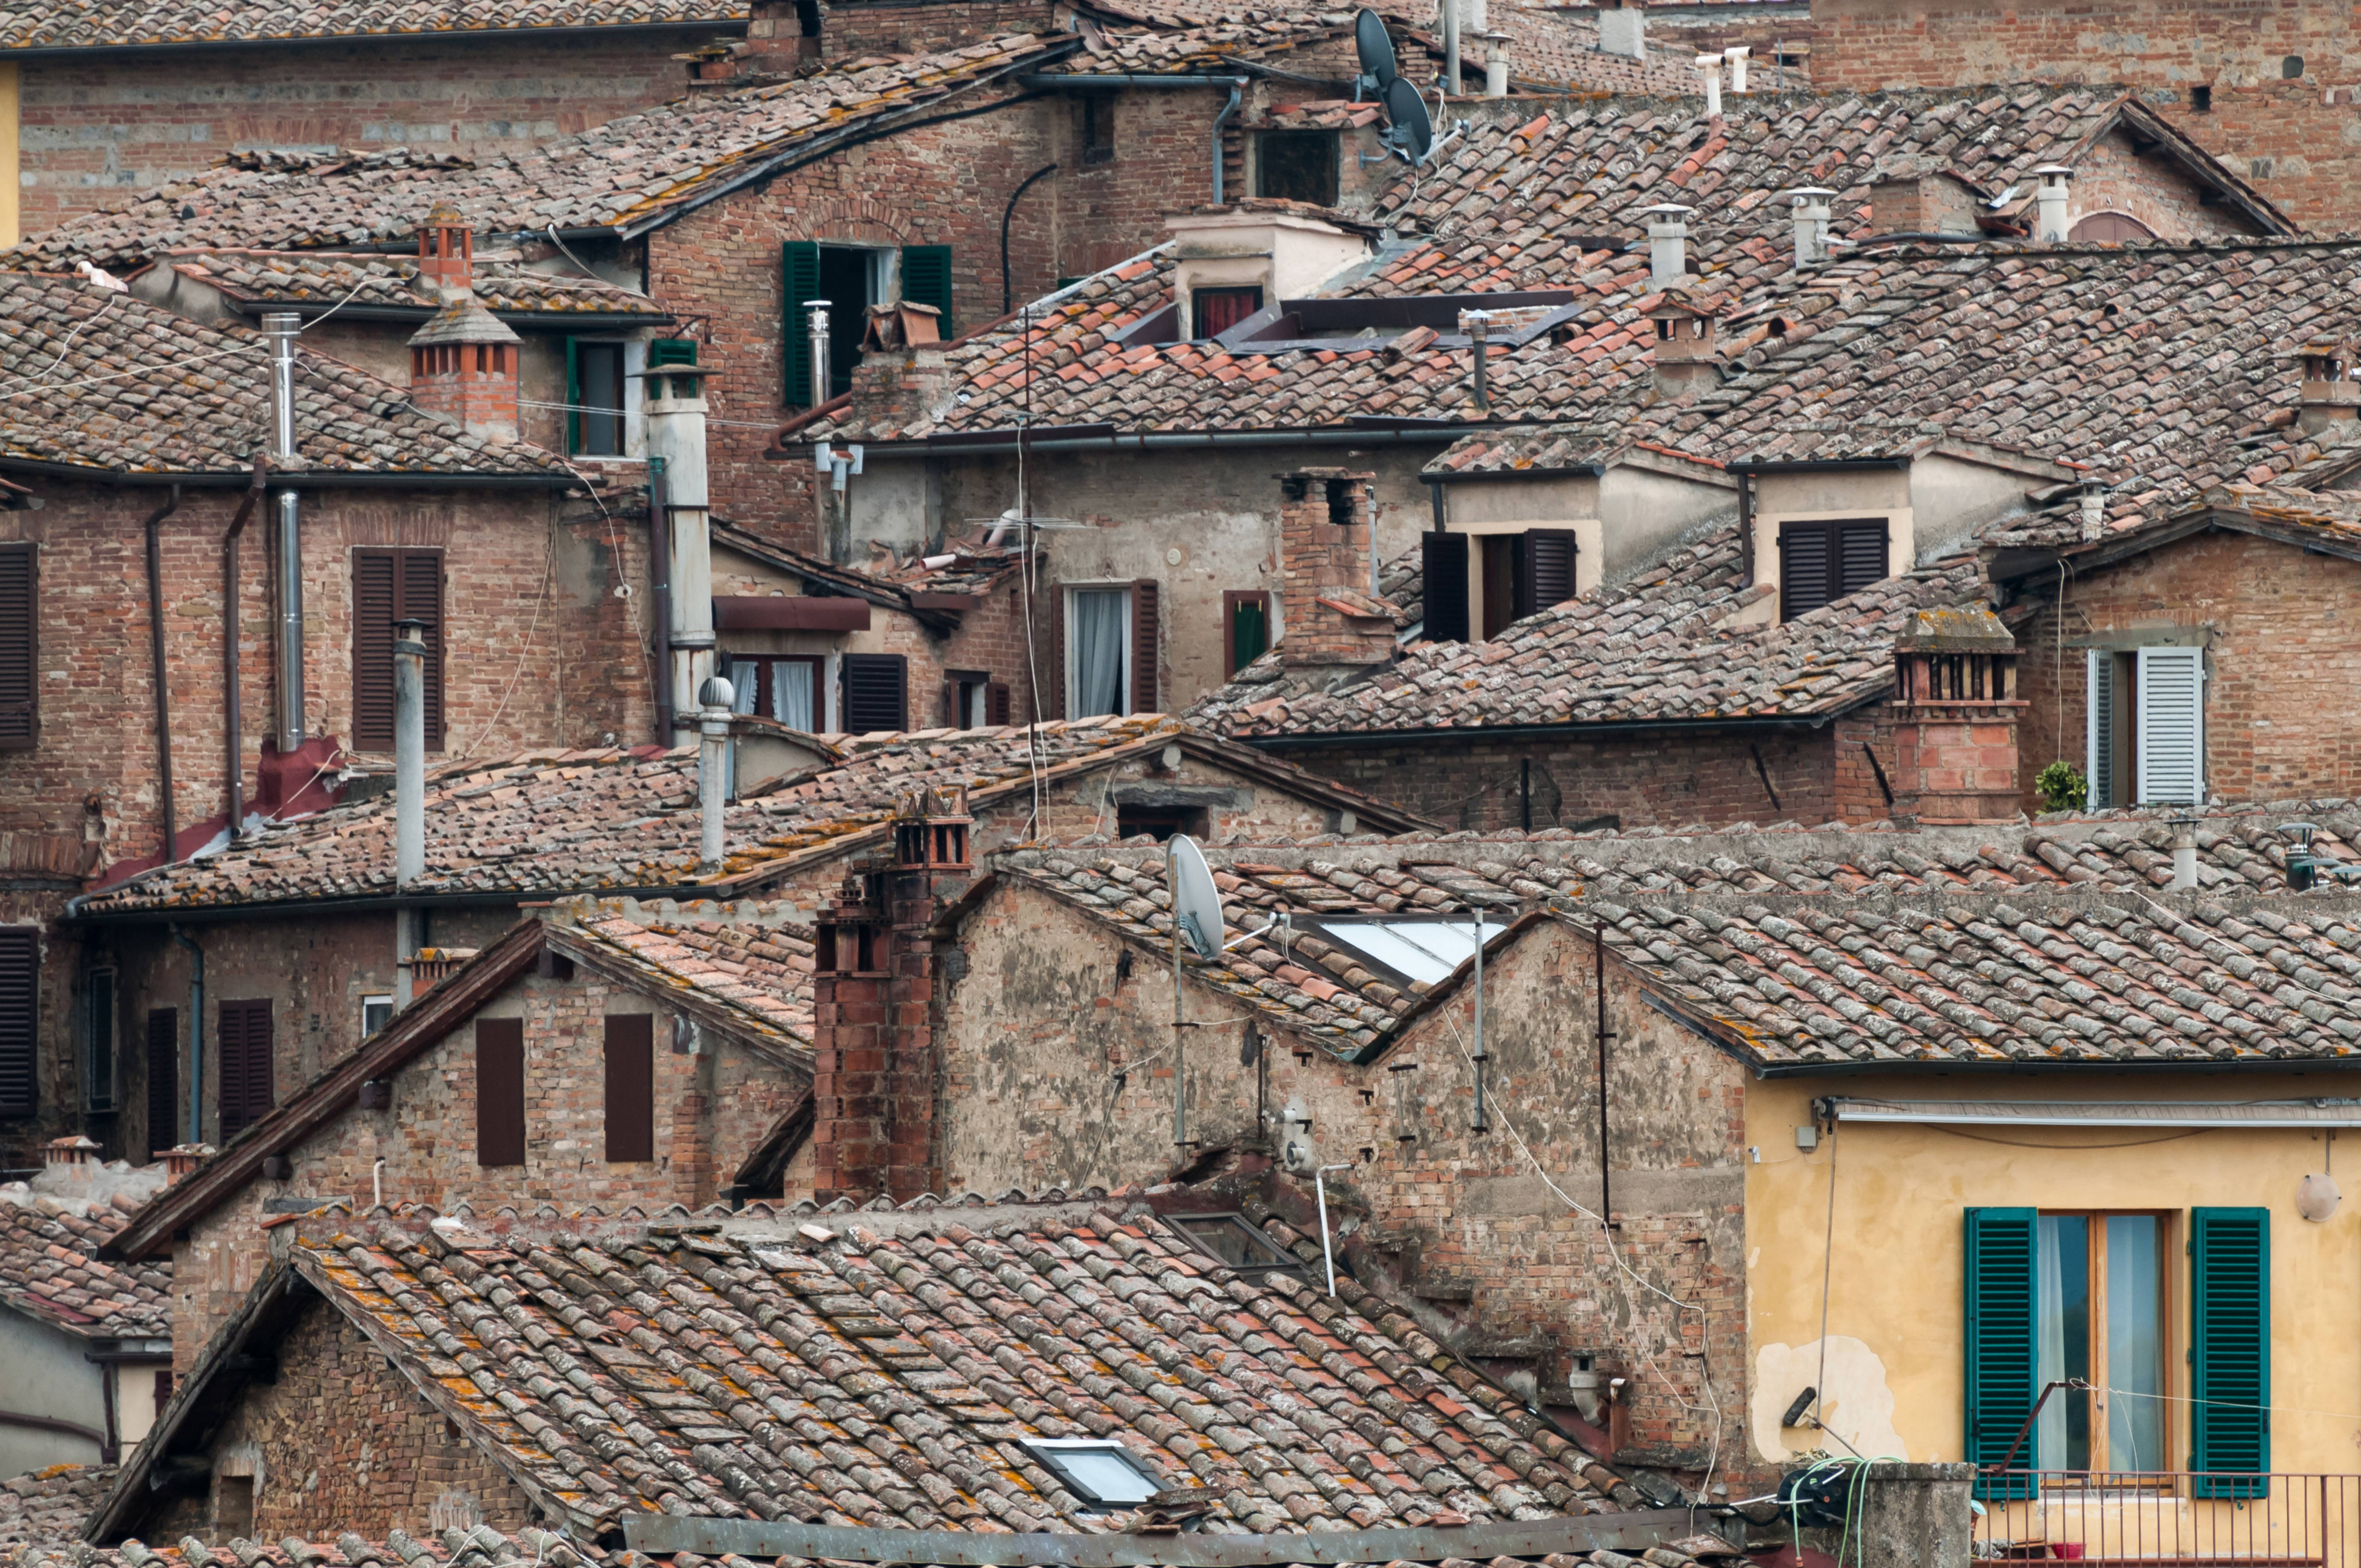 Typical Italian roofs pattern. Siena Italy.